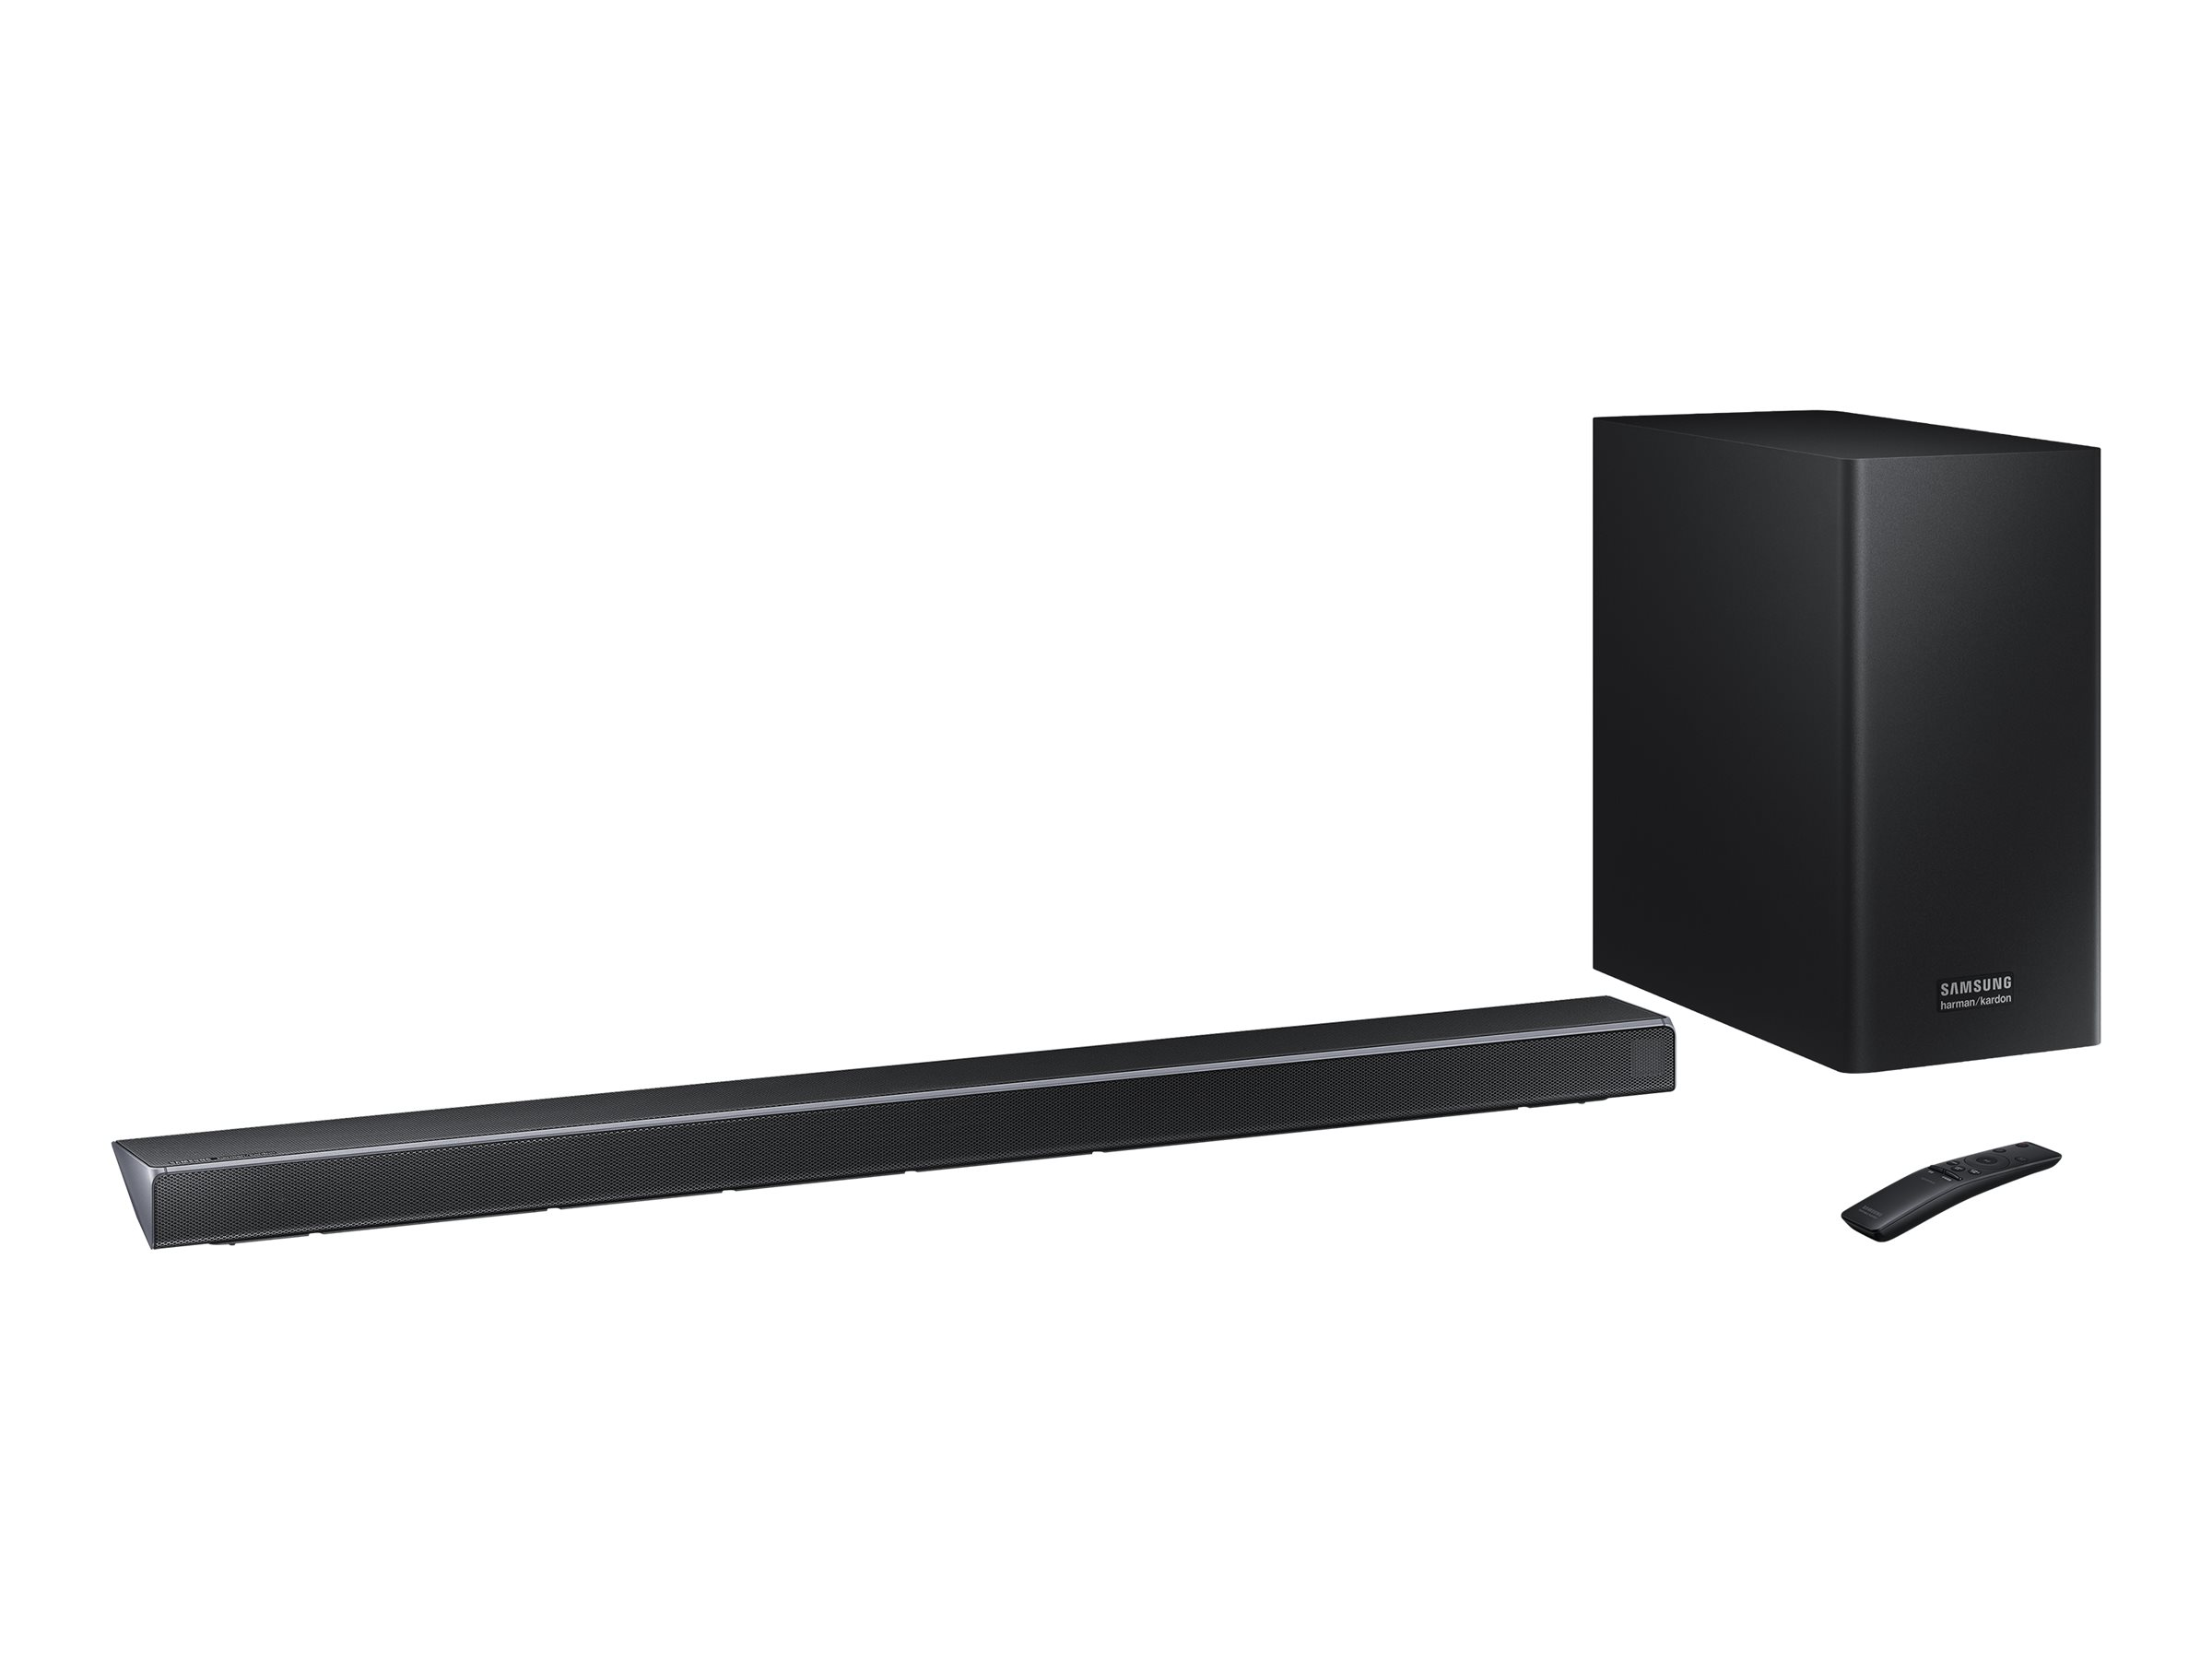 Samsung HW-Q70R - sound bar system - for home theater - wireless